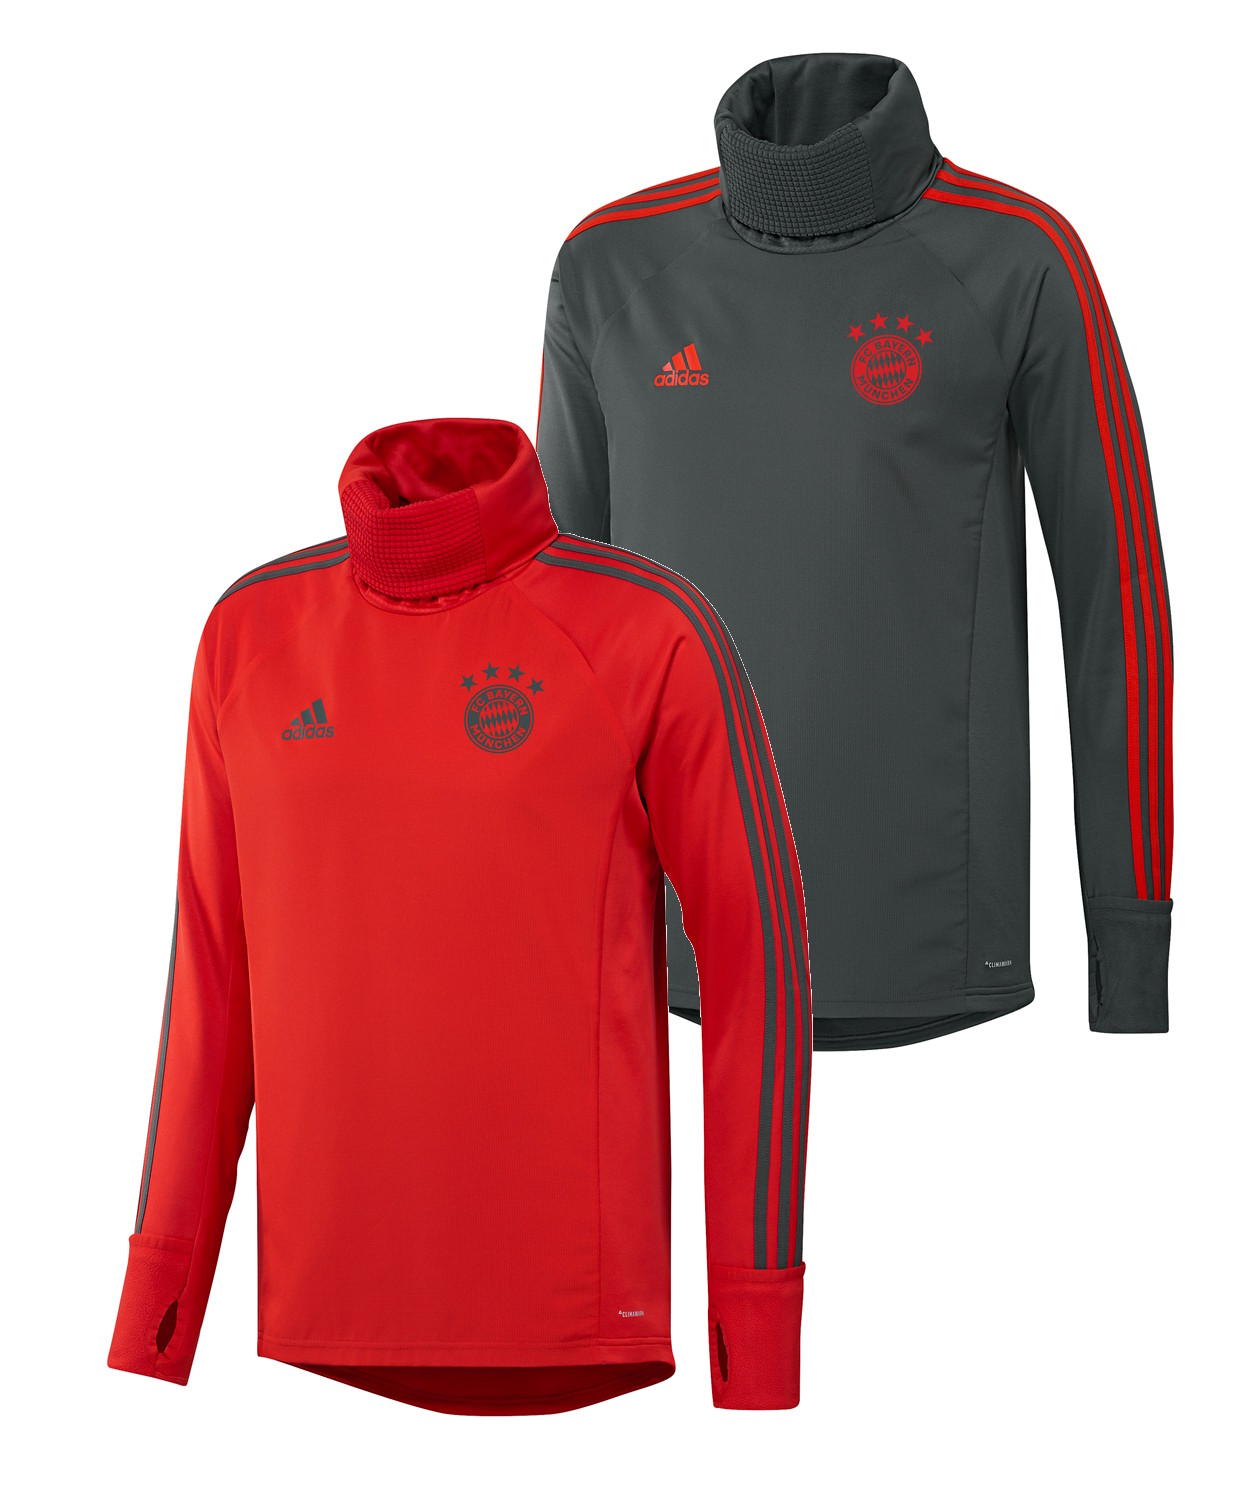 Bayern Munchen Adidas Warm Top Training Sweatshirt 2018 19